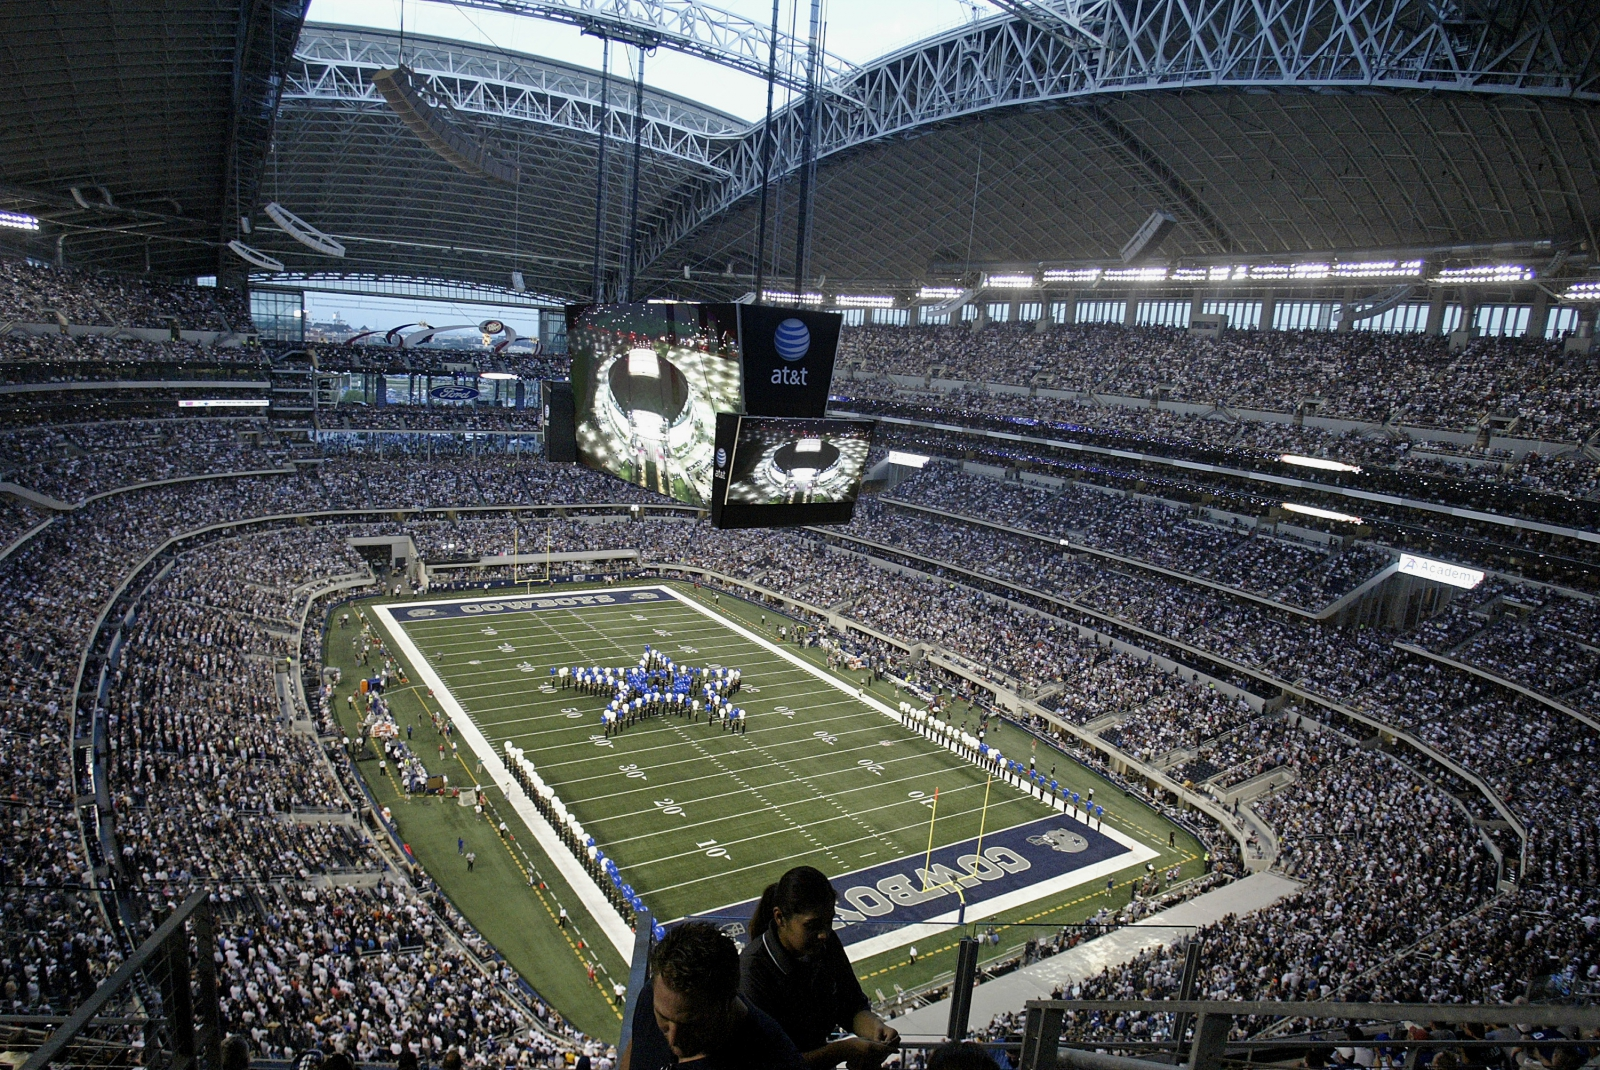 AT&T Stadium in Arlington, Texas.